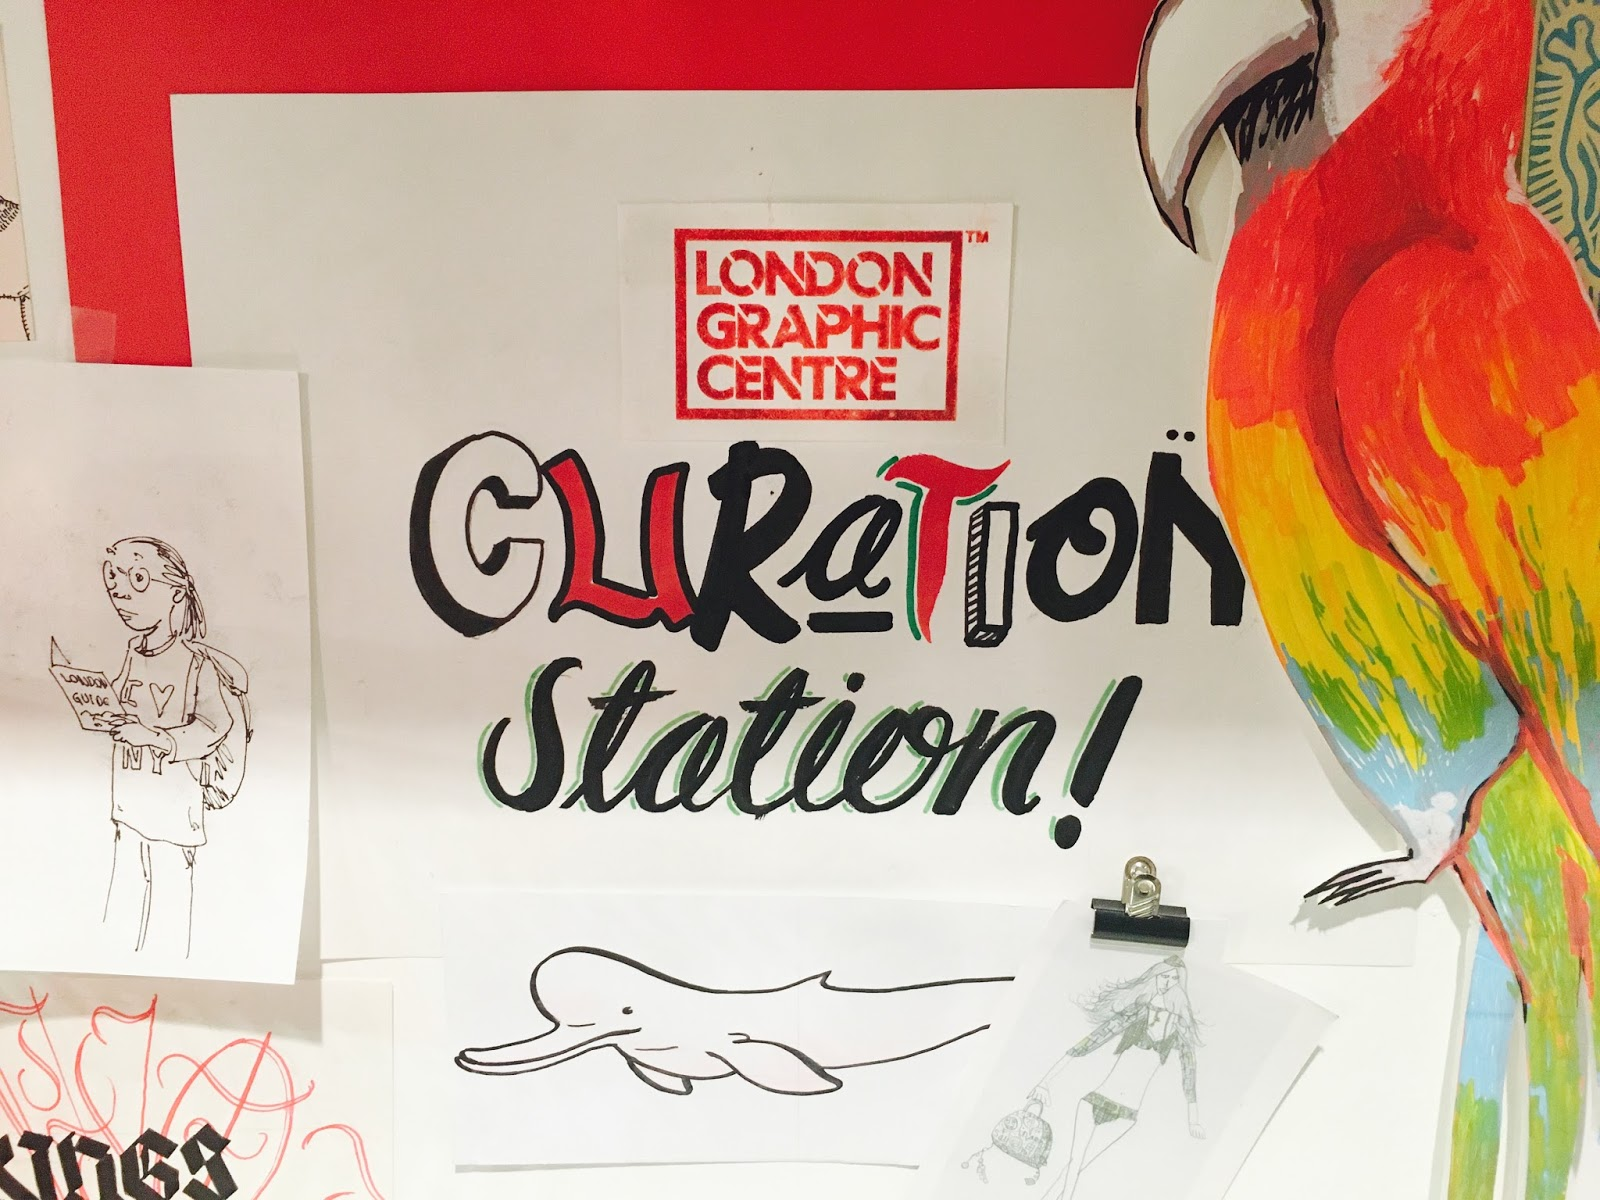 A Creative Christmas Begins At @LondonGraphics #LGCcreativeChristmas #ChristineLovesCards